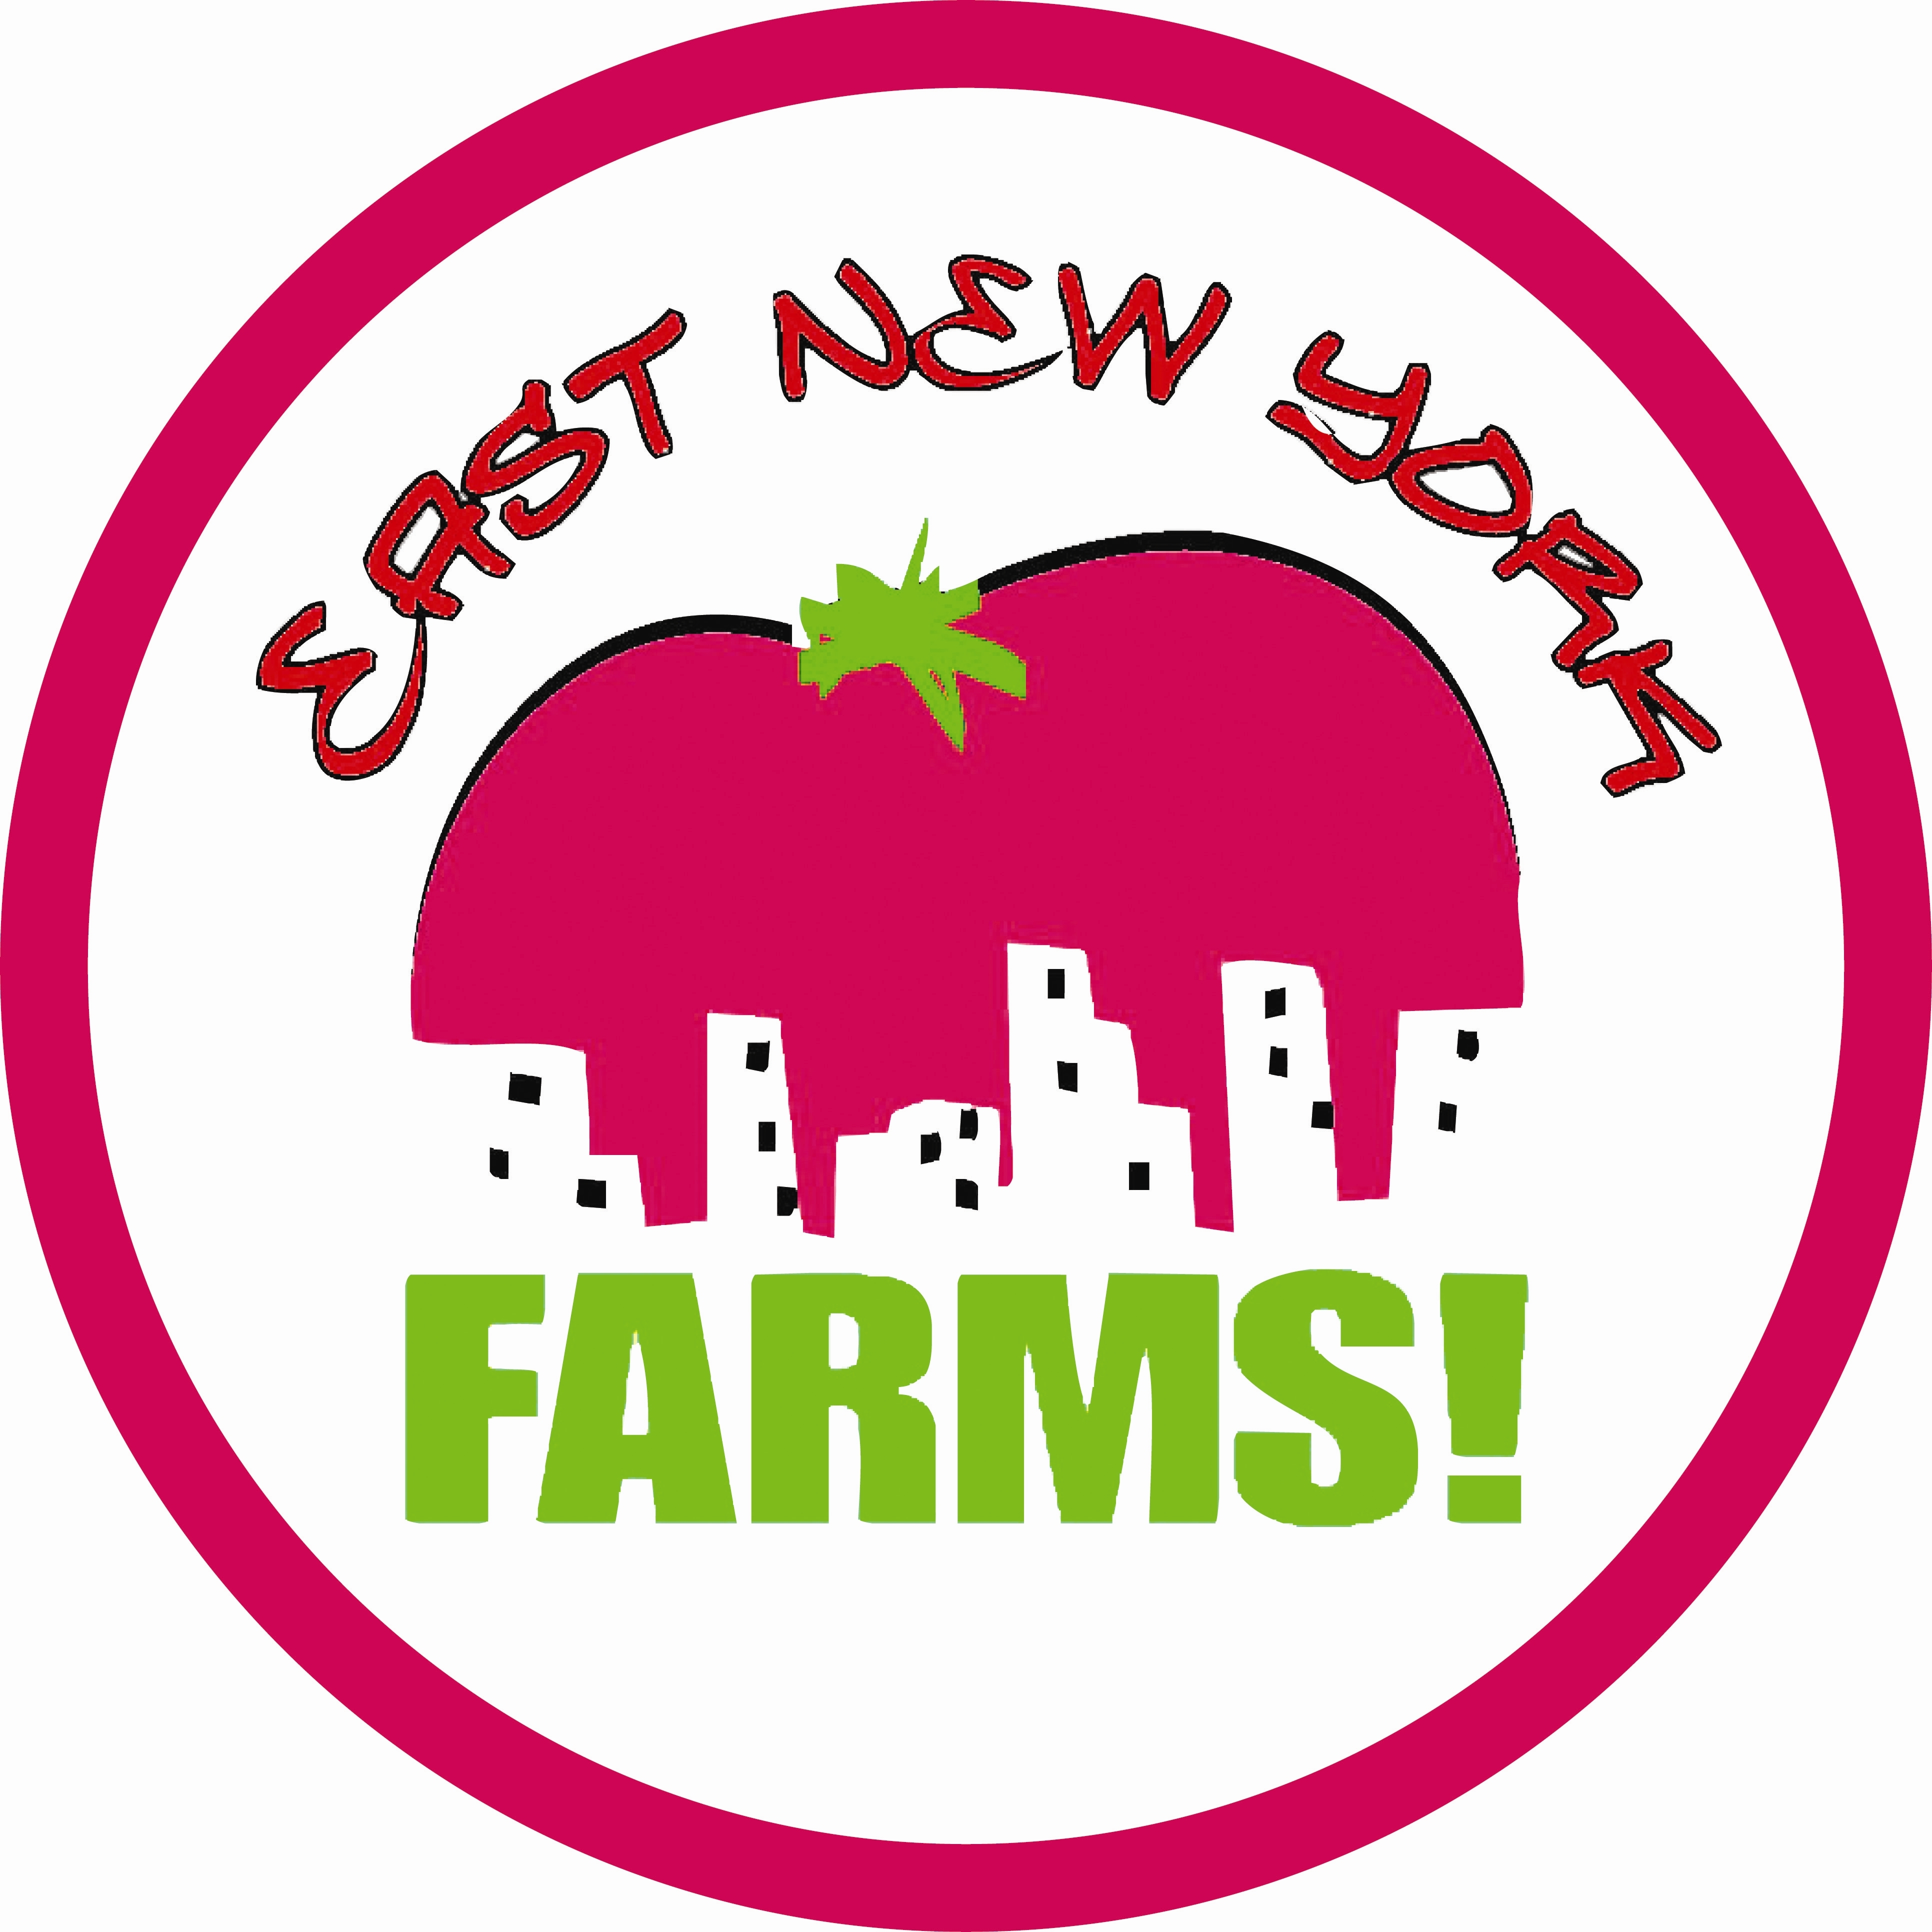 east-new-york-farms-logo.jpg